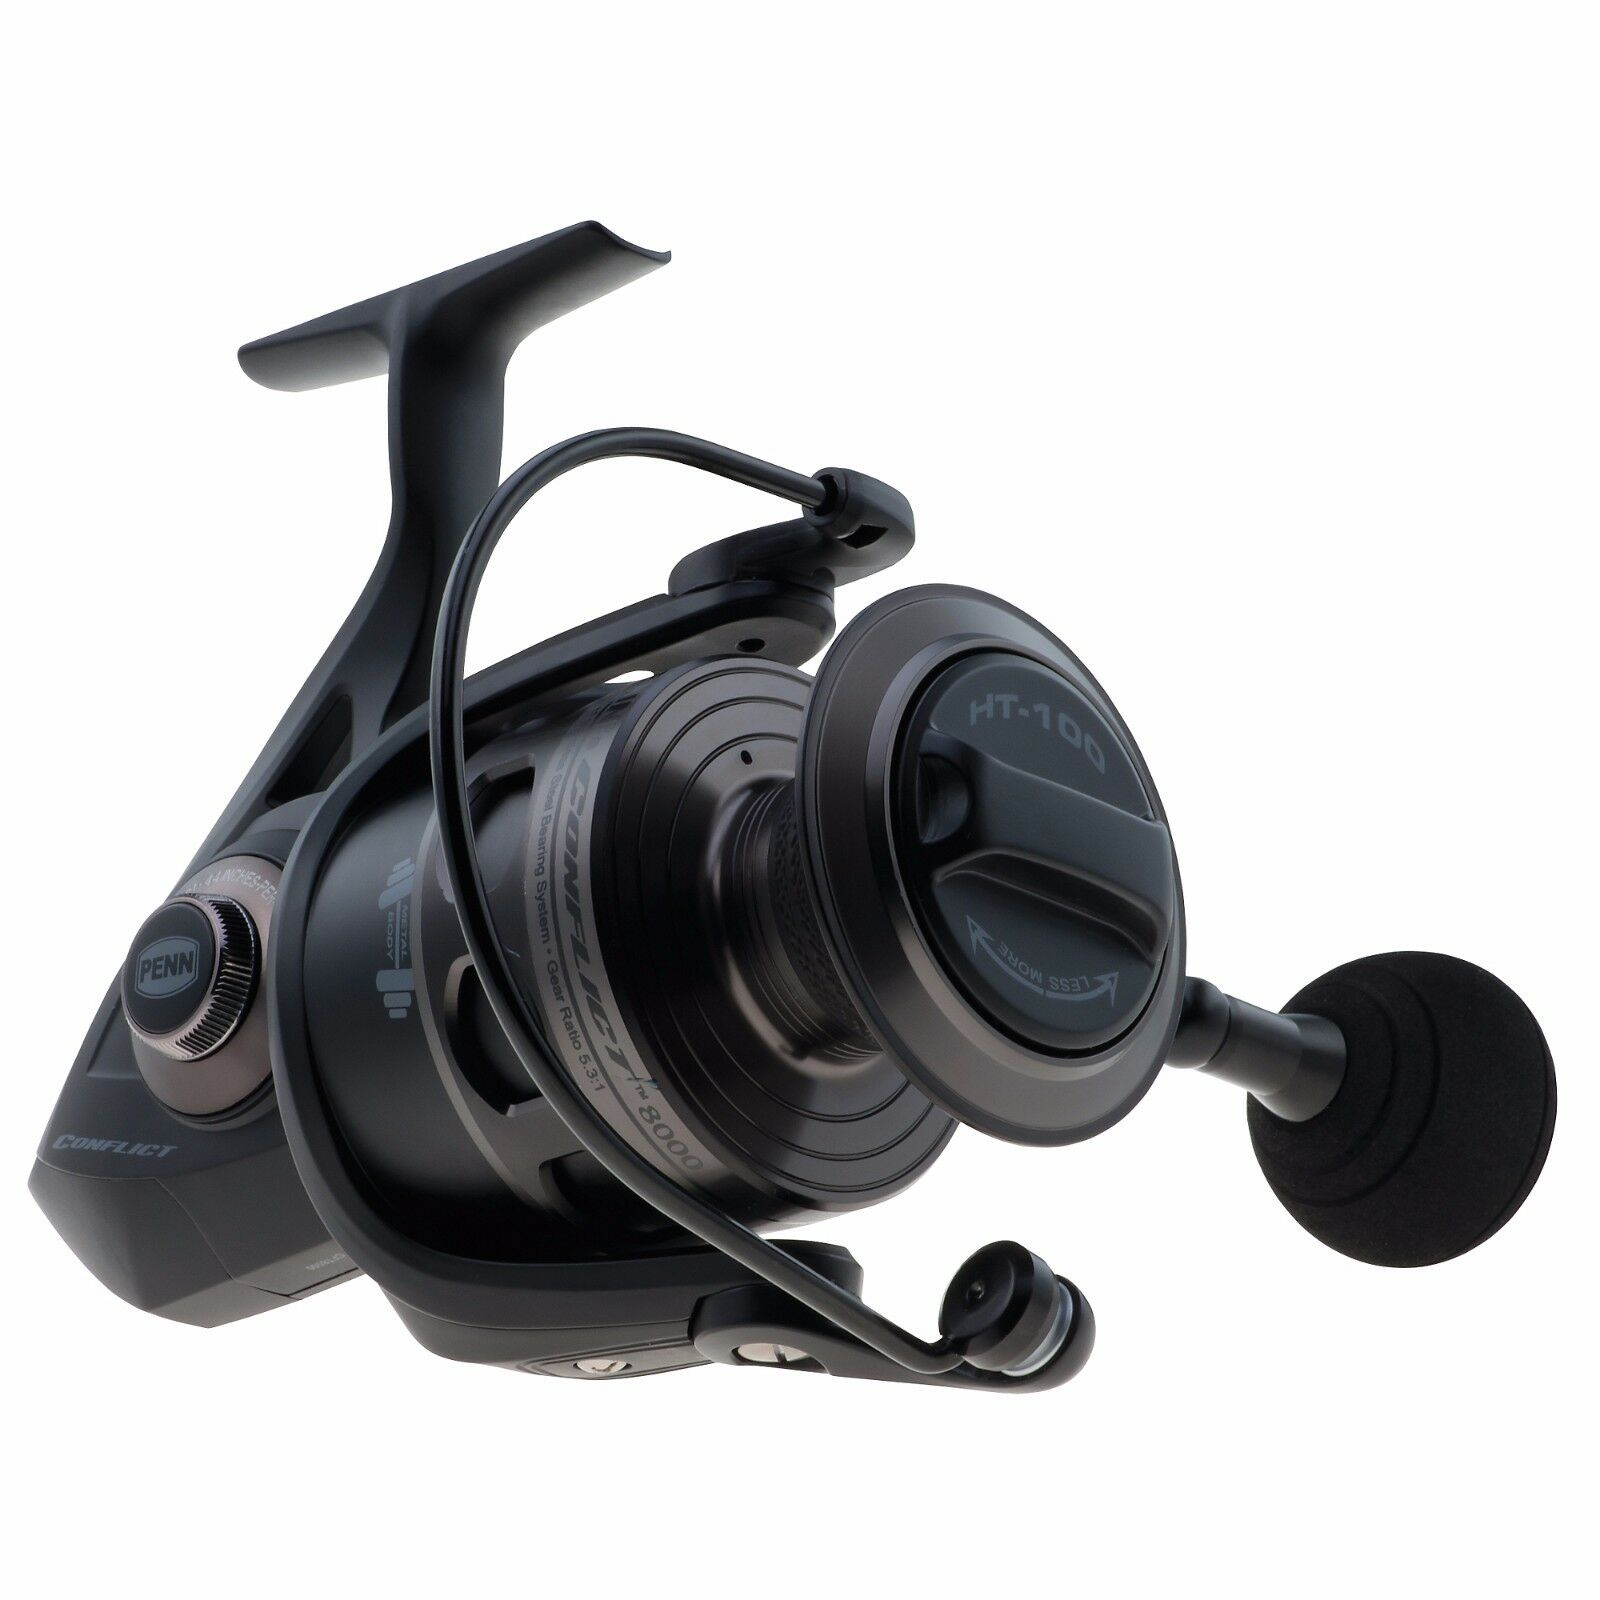 Penn Conflict II Spinning fixed fishing reel